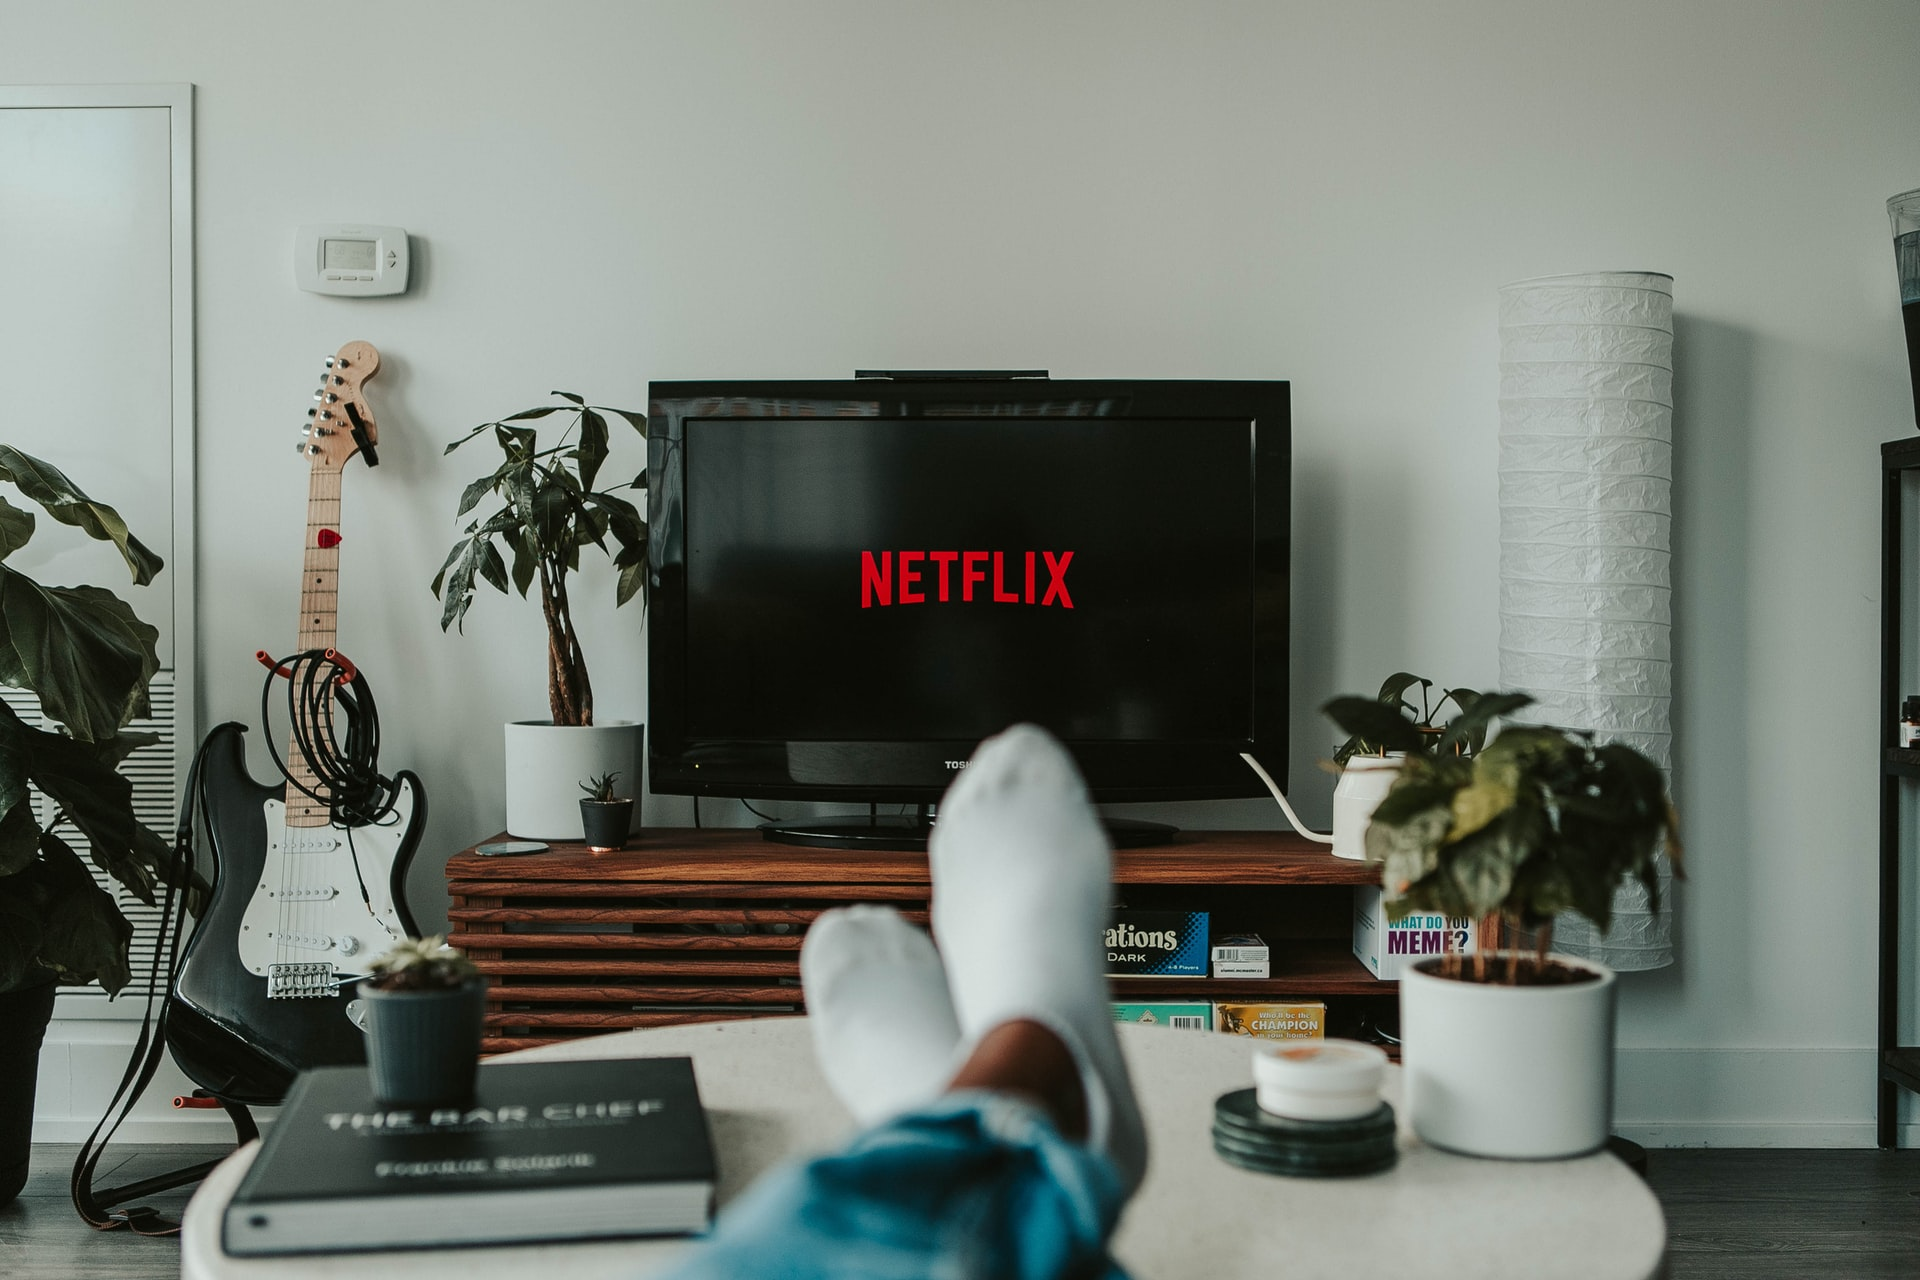 This image shows feet up on a coffee table with Netflix playing in the background.